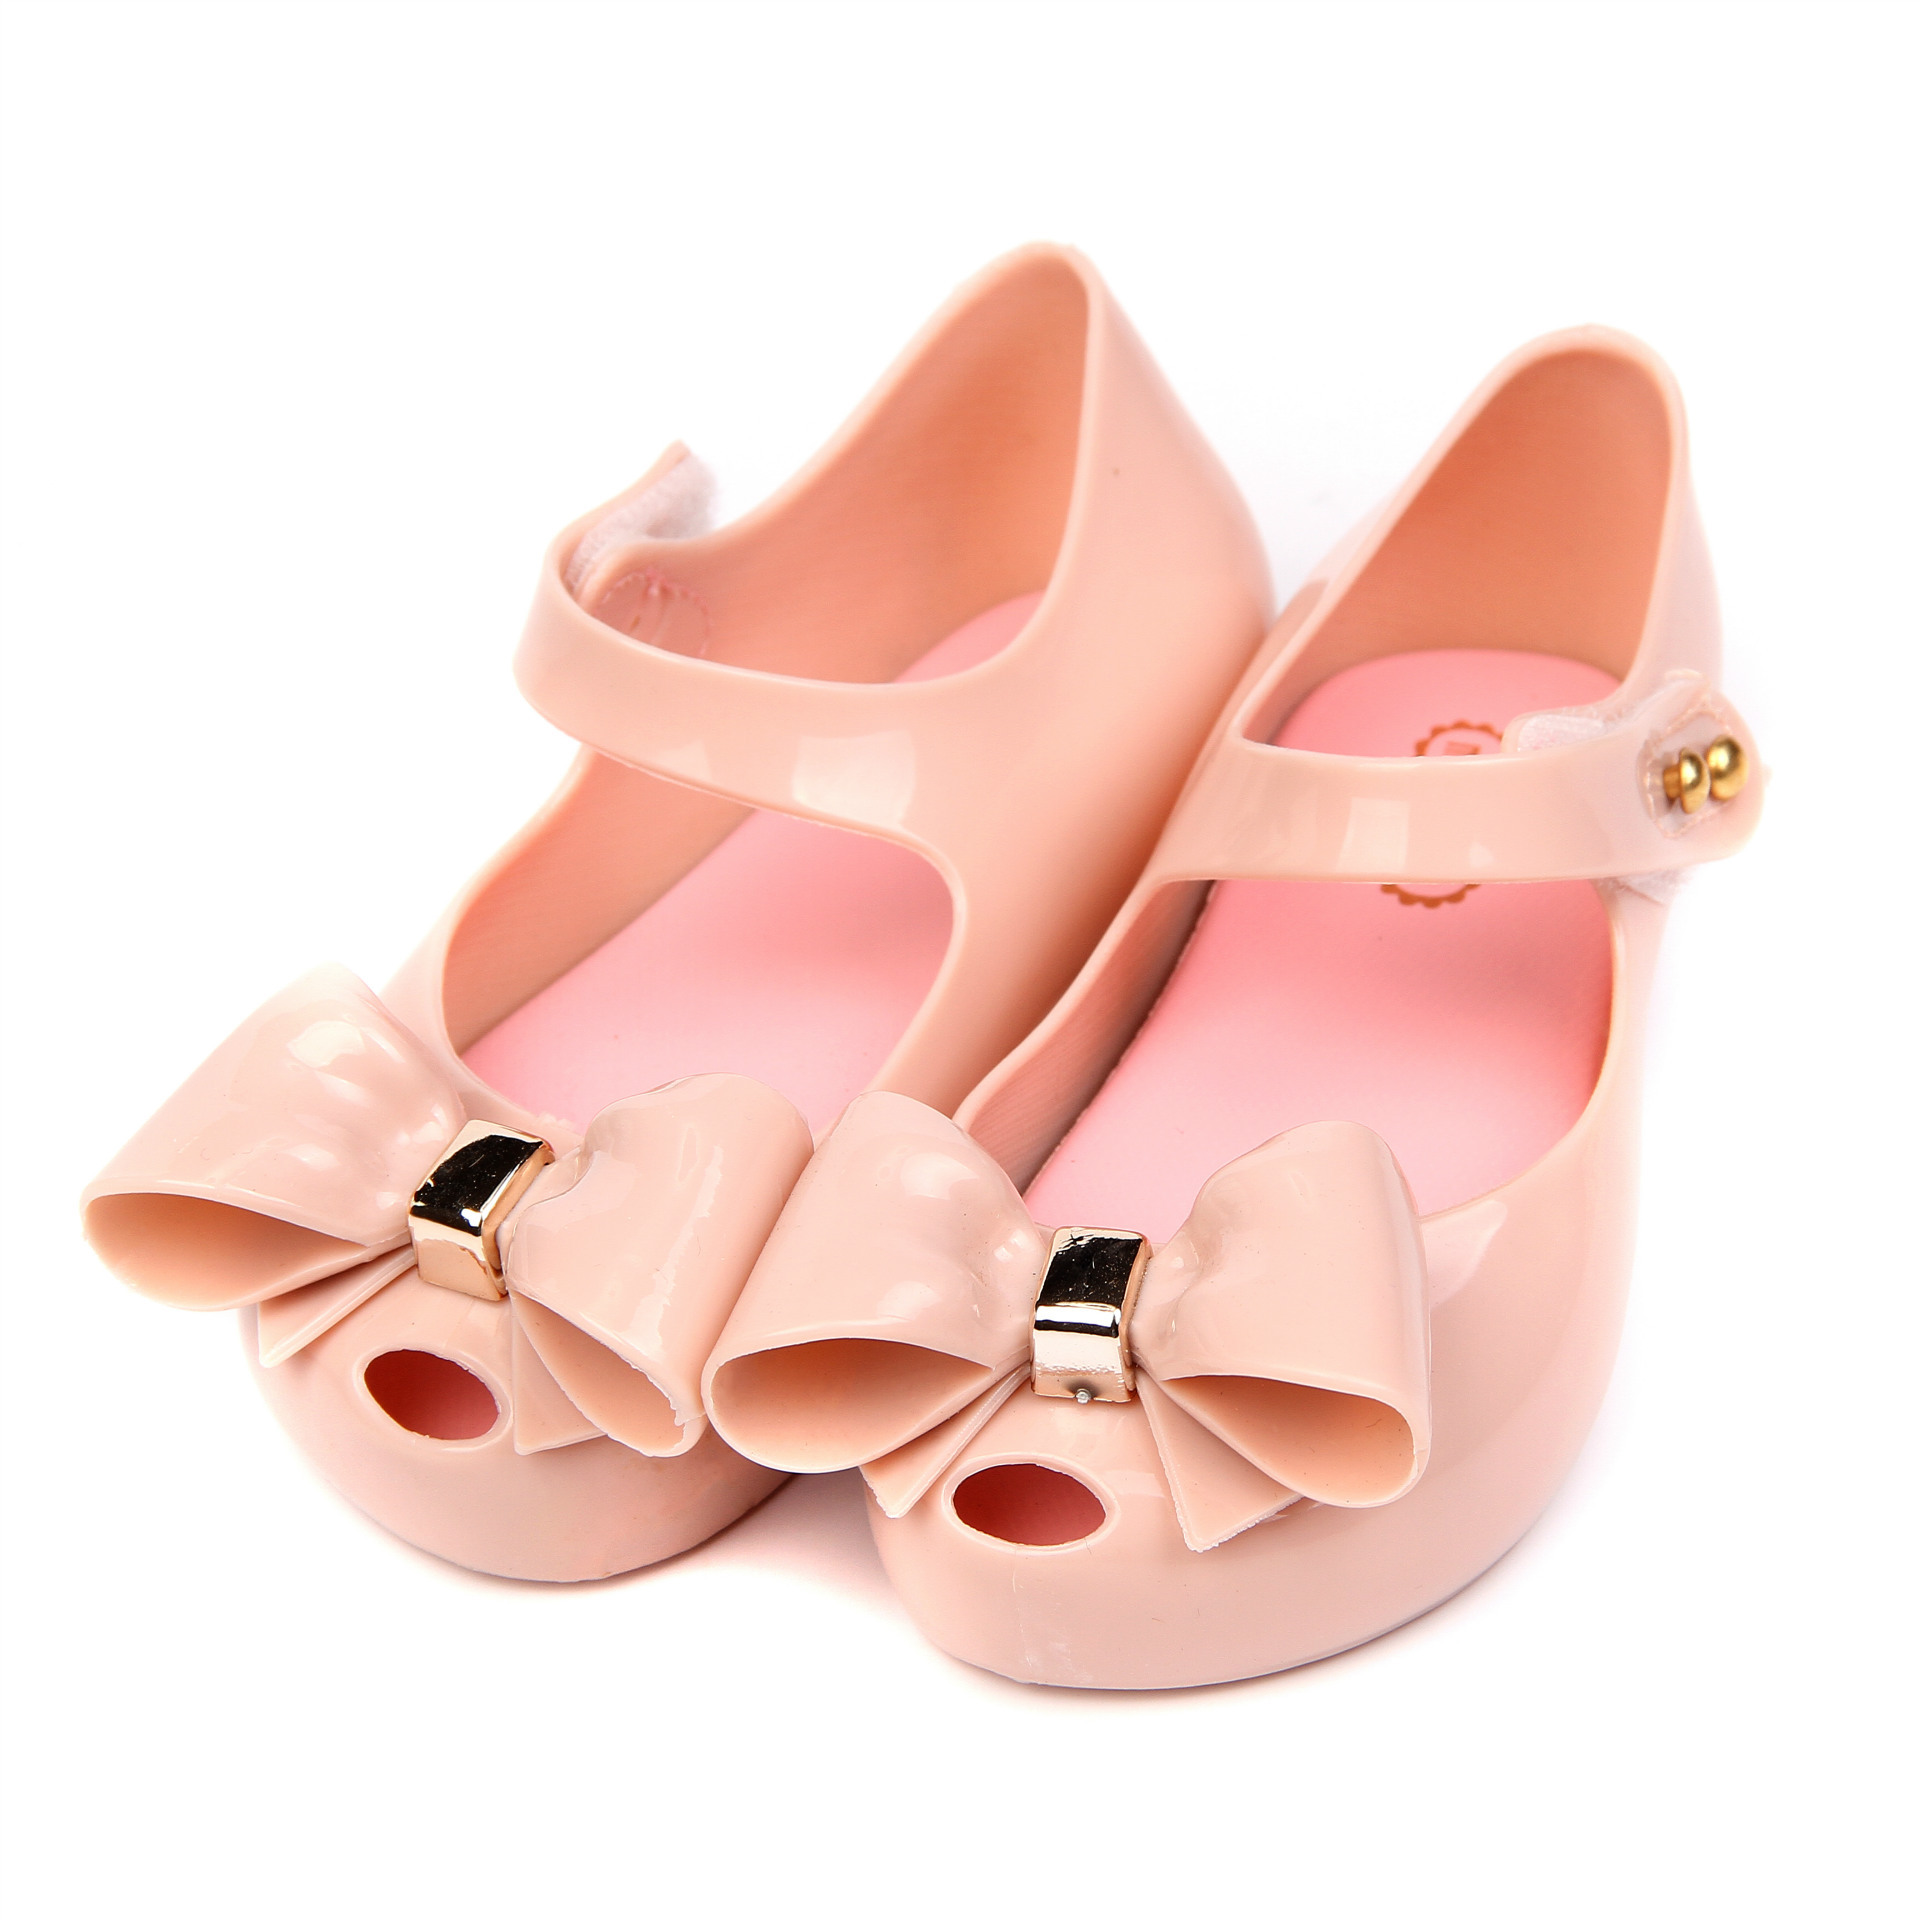 Melissa Jelly Rain Mini Bowtie Shoes 2018 Summer New PVC Bow Soft Comfort Kids Shoe Water Sandal Toddler Girl Sandals